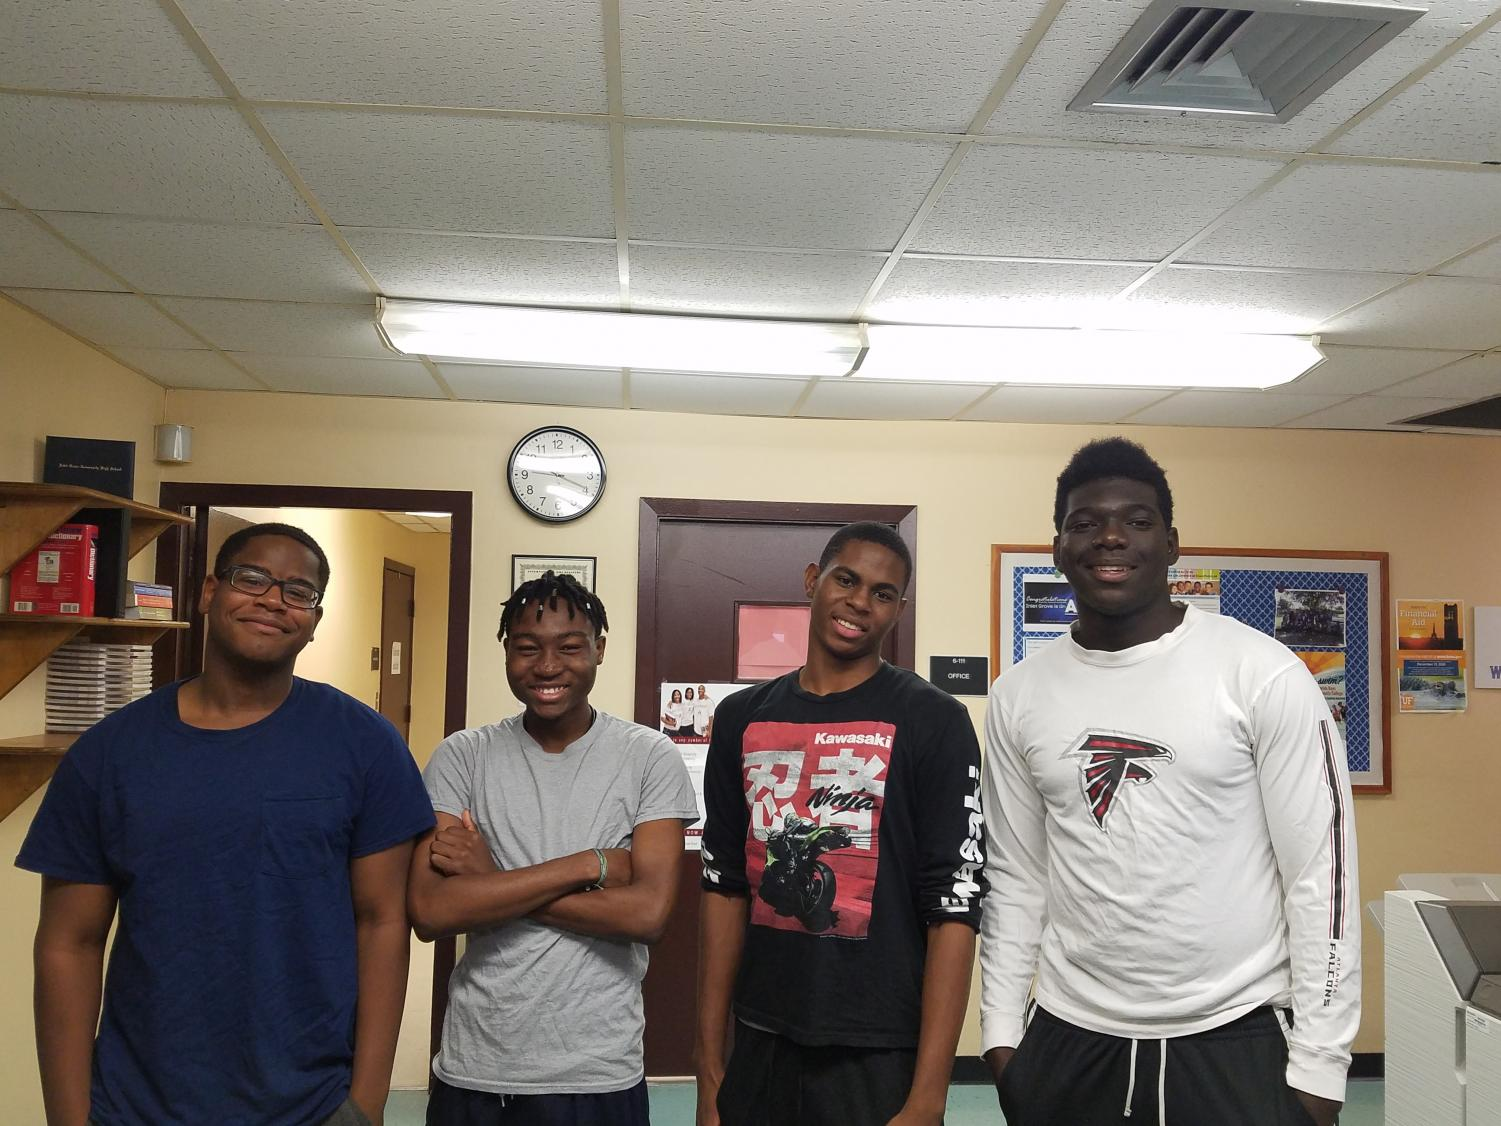 THE COME BACK: A few students from class of 2018 decided to stop by, their names, school name, and major from left to right are: Michael Andre, Palm Beach State College (Palm Beach Gardens Campus), Biotechnology; Alex Jeannite, Florida State University, Computer Science; Philip Jn Pierre, Palm Beach State College (Lake Worth Campus), Biology; and Hawonce Luberisse, Palm Beach State College, Architecture (Boca Raton Campus).